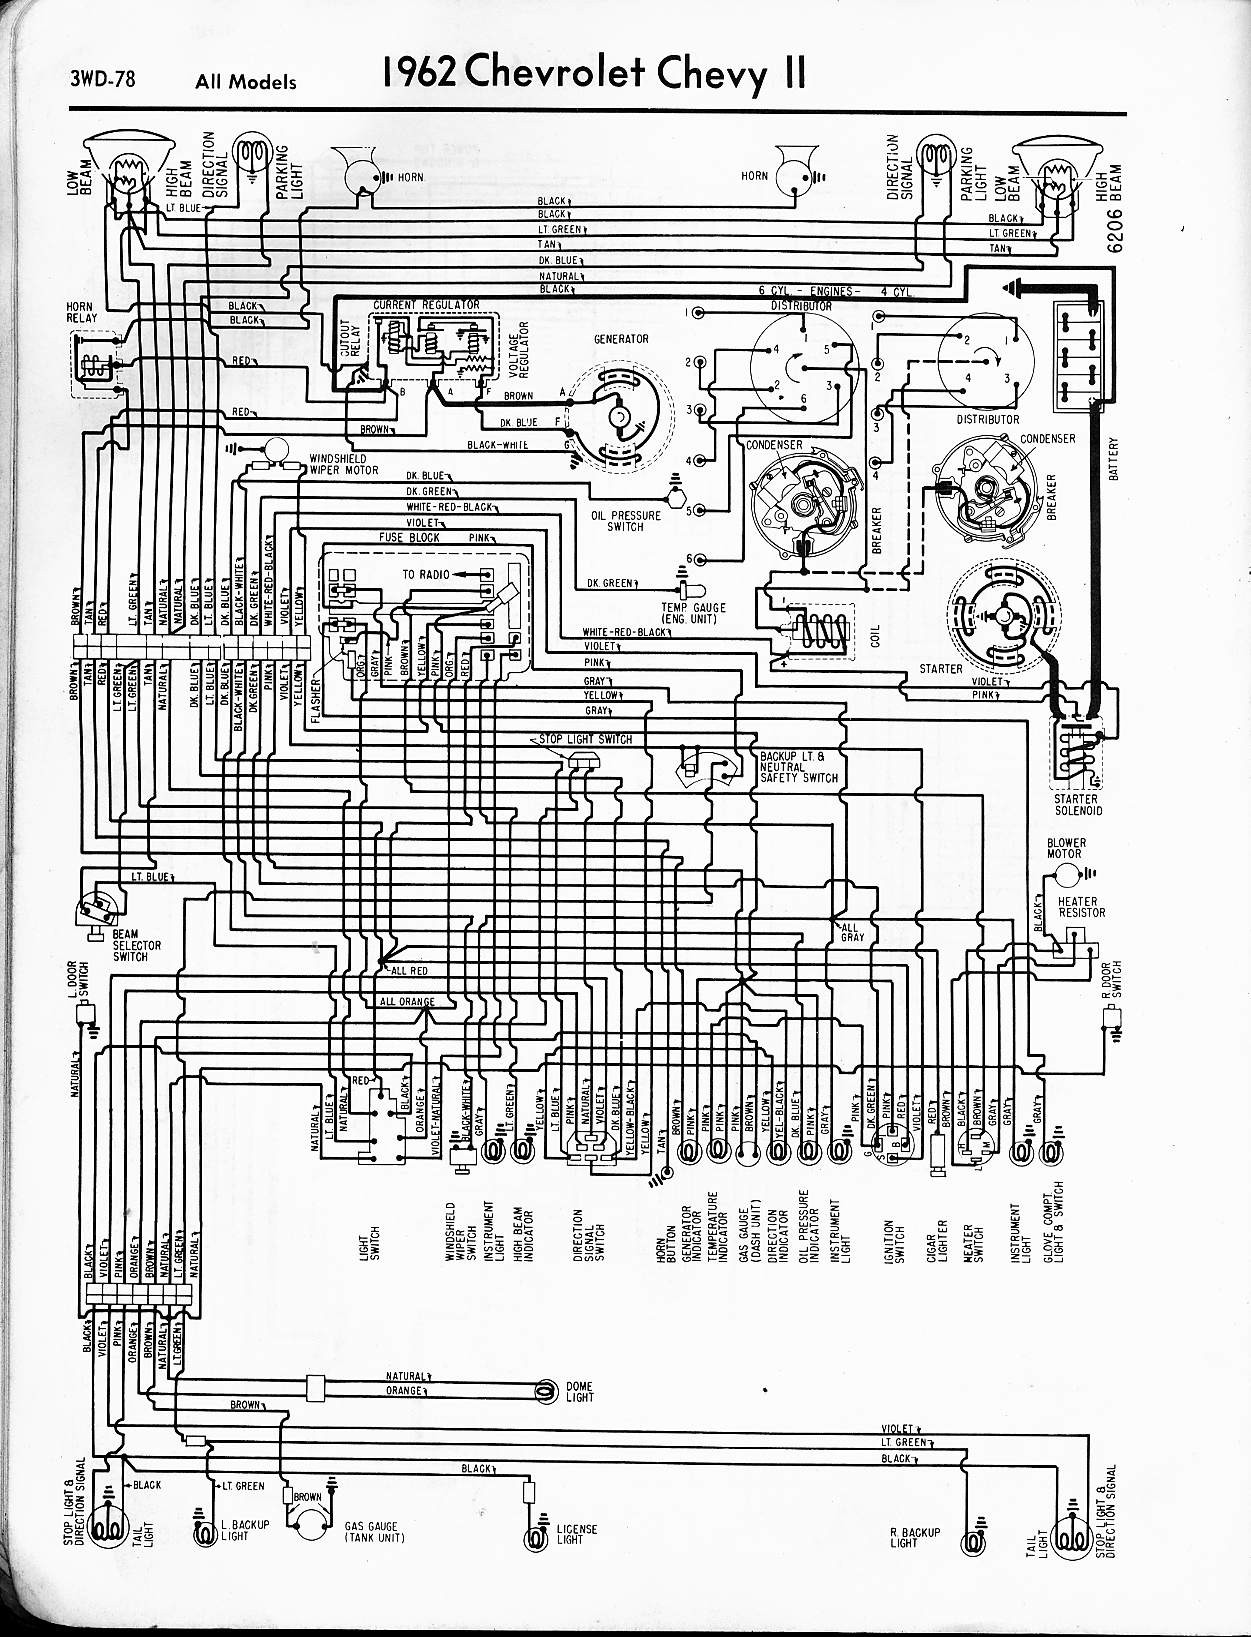 1962 chevy wiring diagrams - wiring diagrams site form-light -  form-light.geasparquet.it  geas parquet